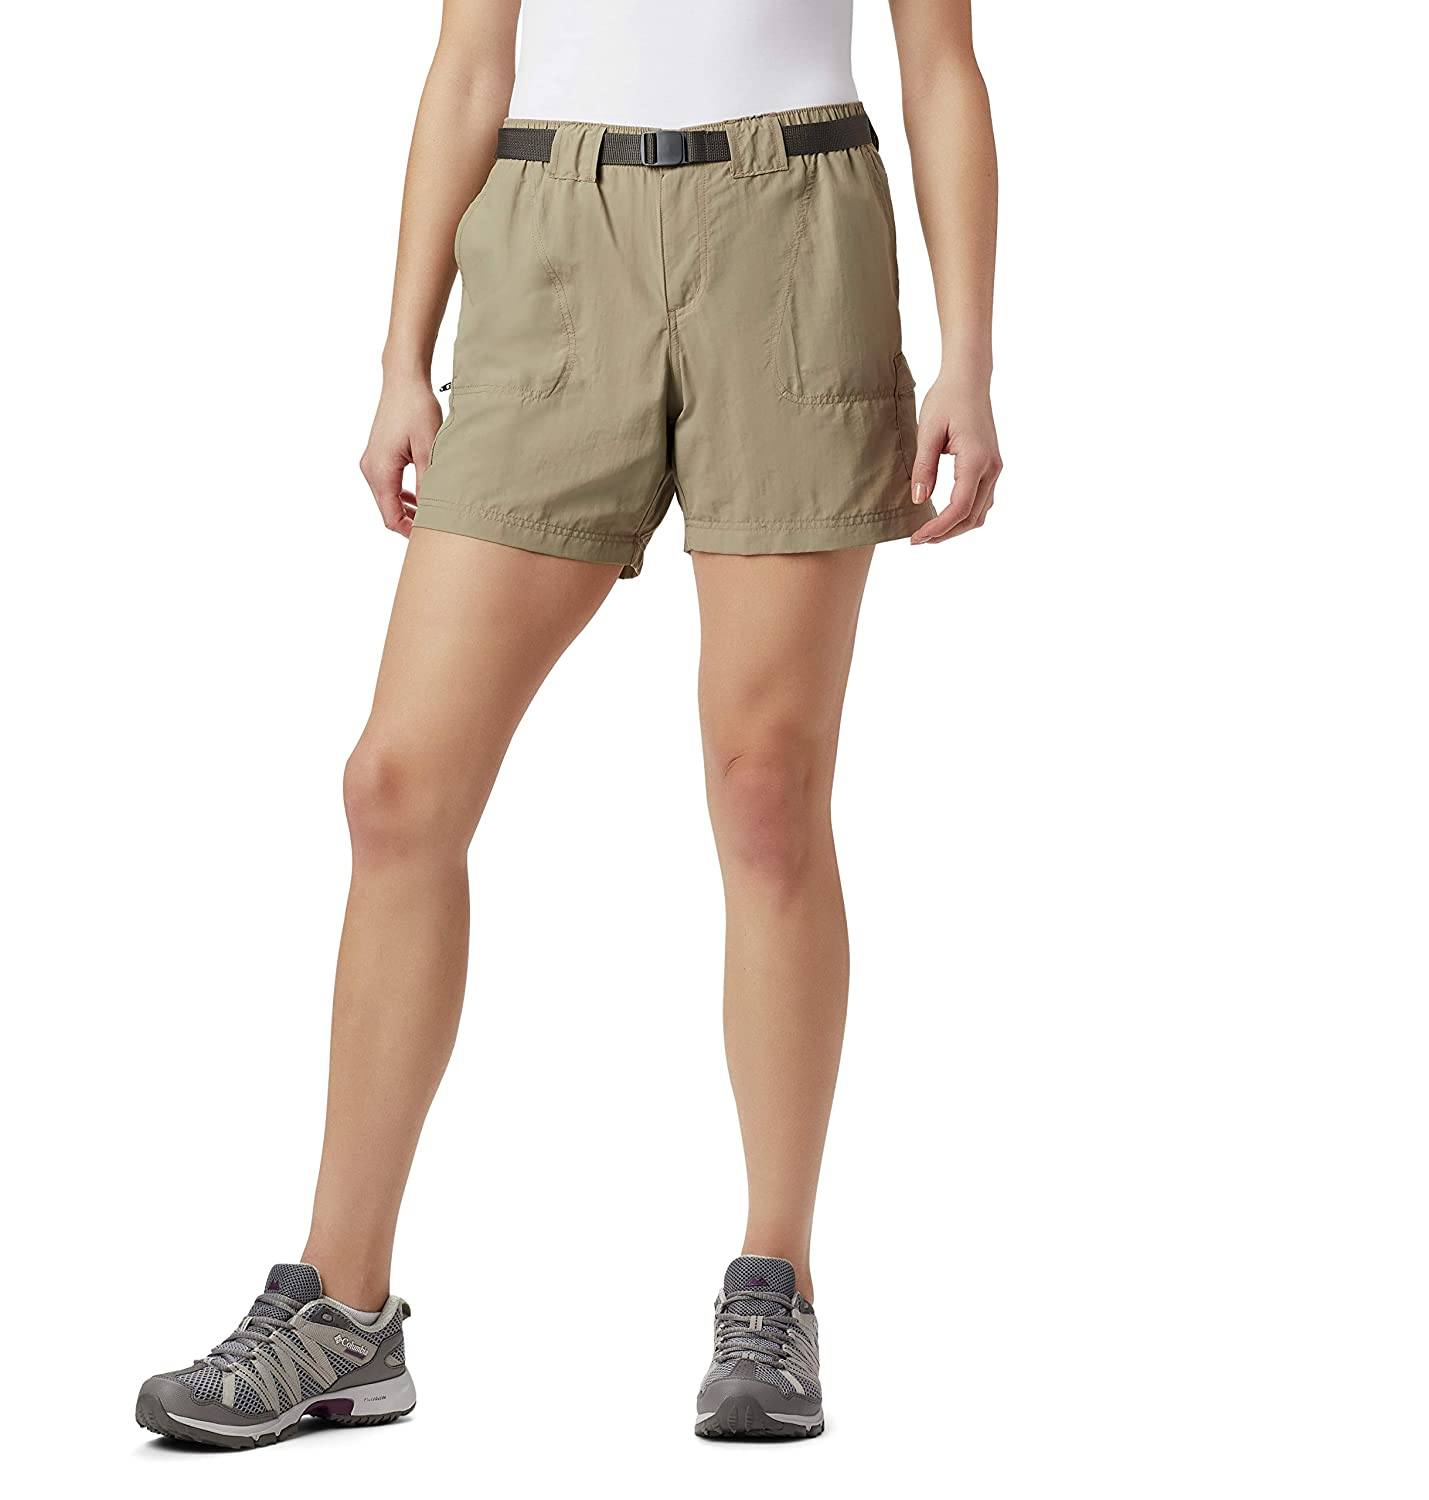 Columbia Women's Sandy River Cargo Short Shorts, -tusk, XSx6